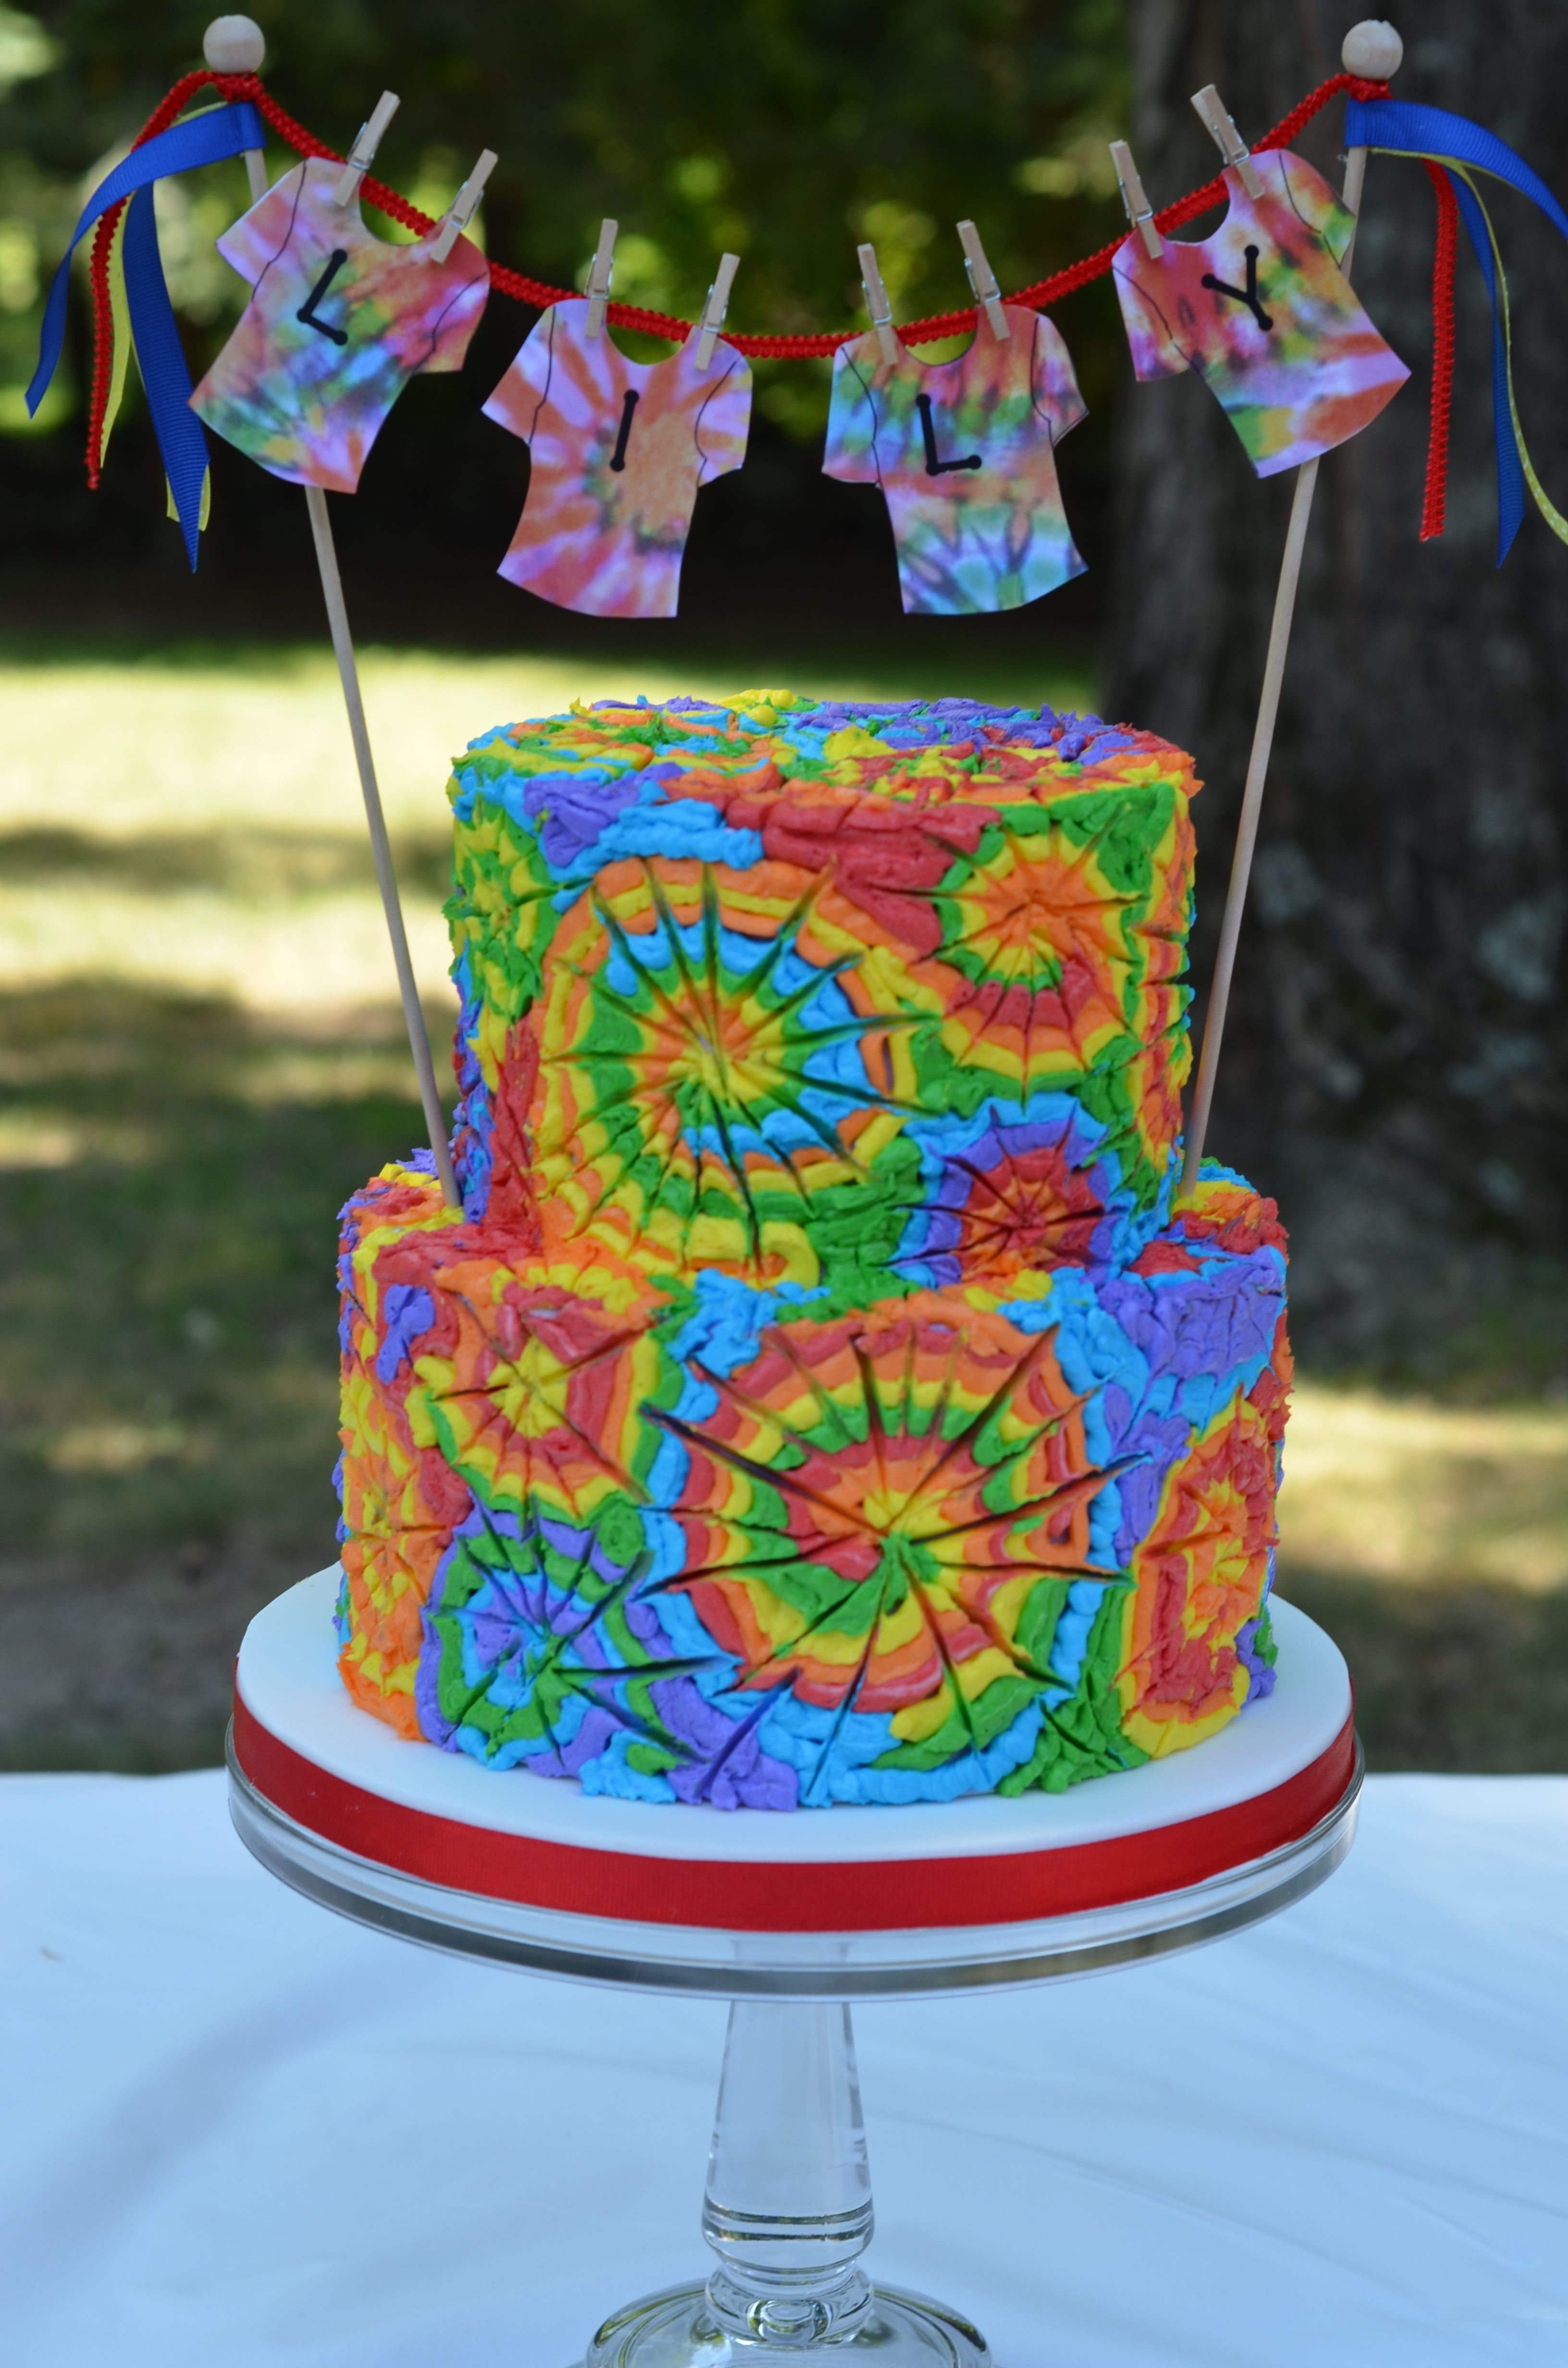 10 Most Recommended Tie Dye Birthday Party Ideas birthday cakes i made this cake for a tie dye birthday party the